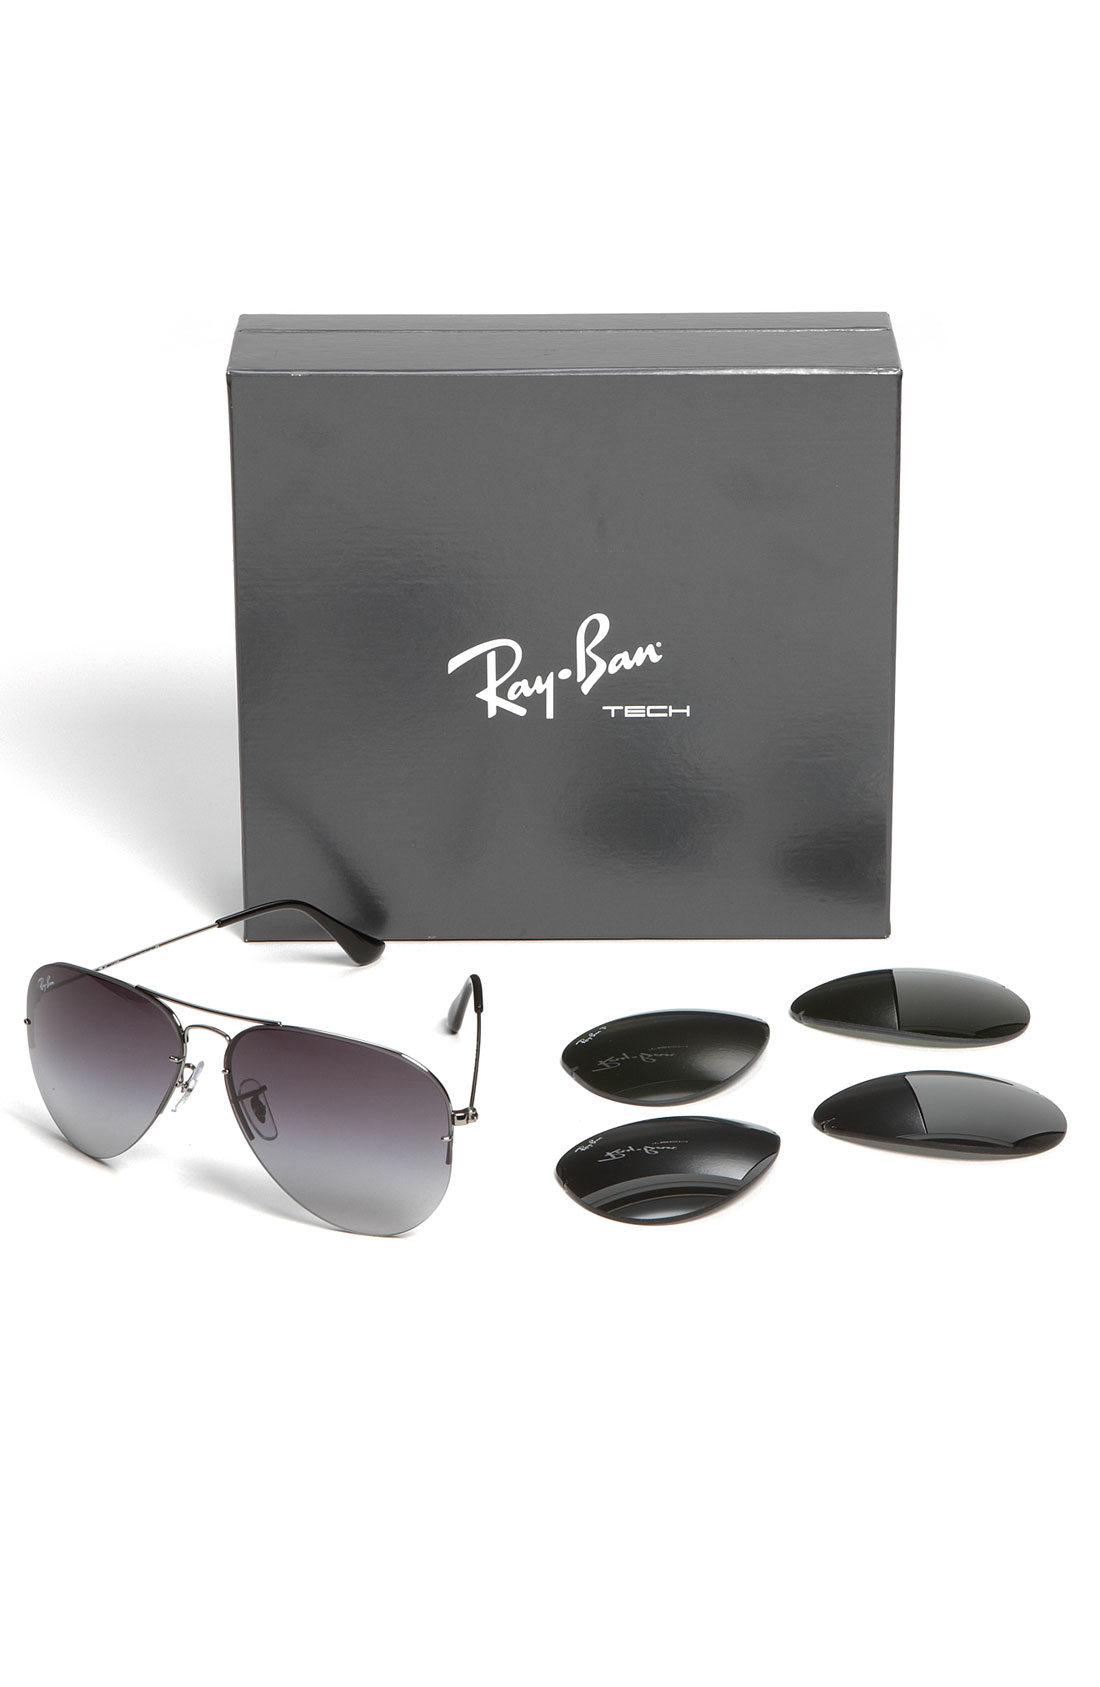 where to get ray ban sunglasses adjusted  how to adjust ray ban aviators